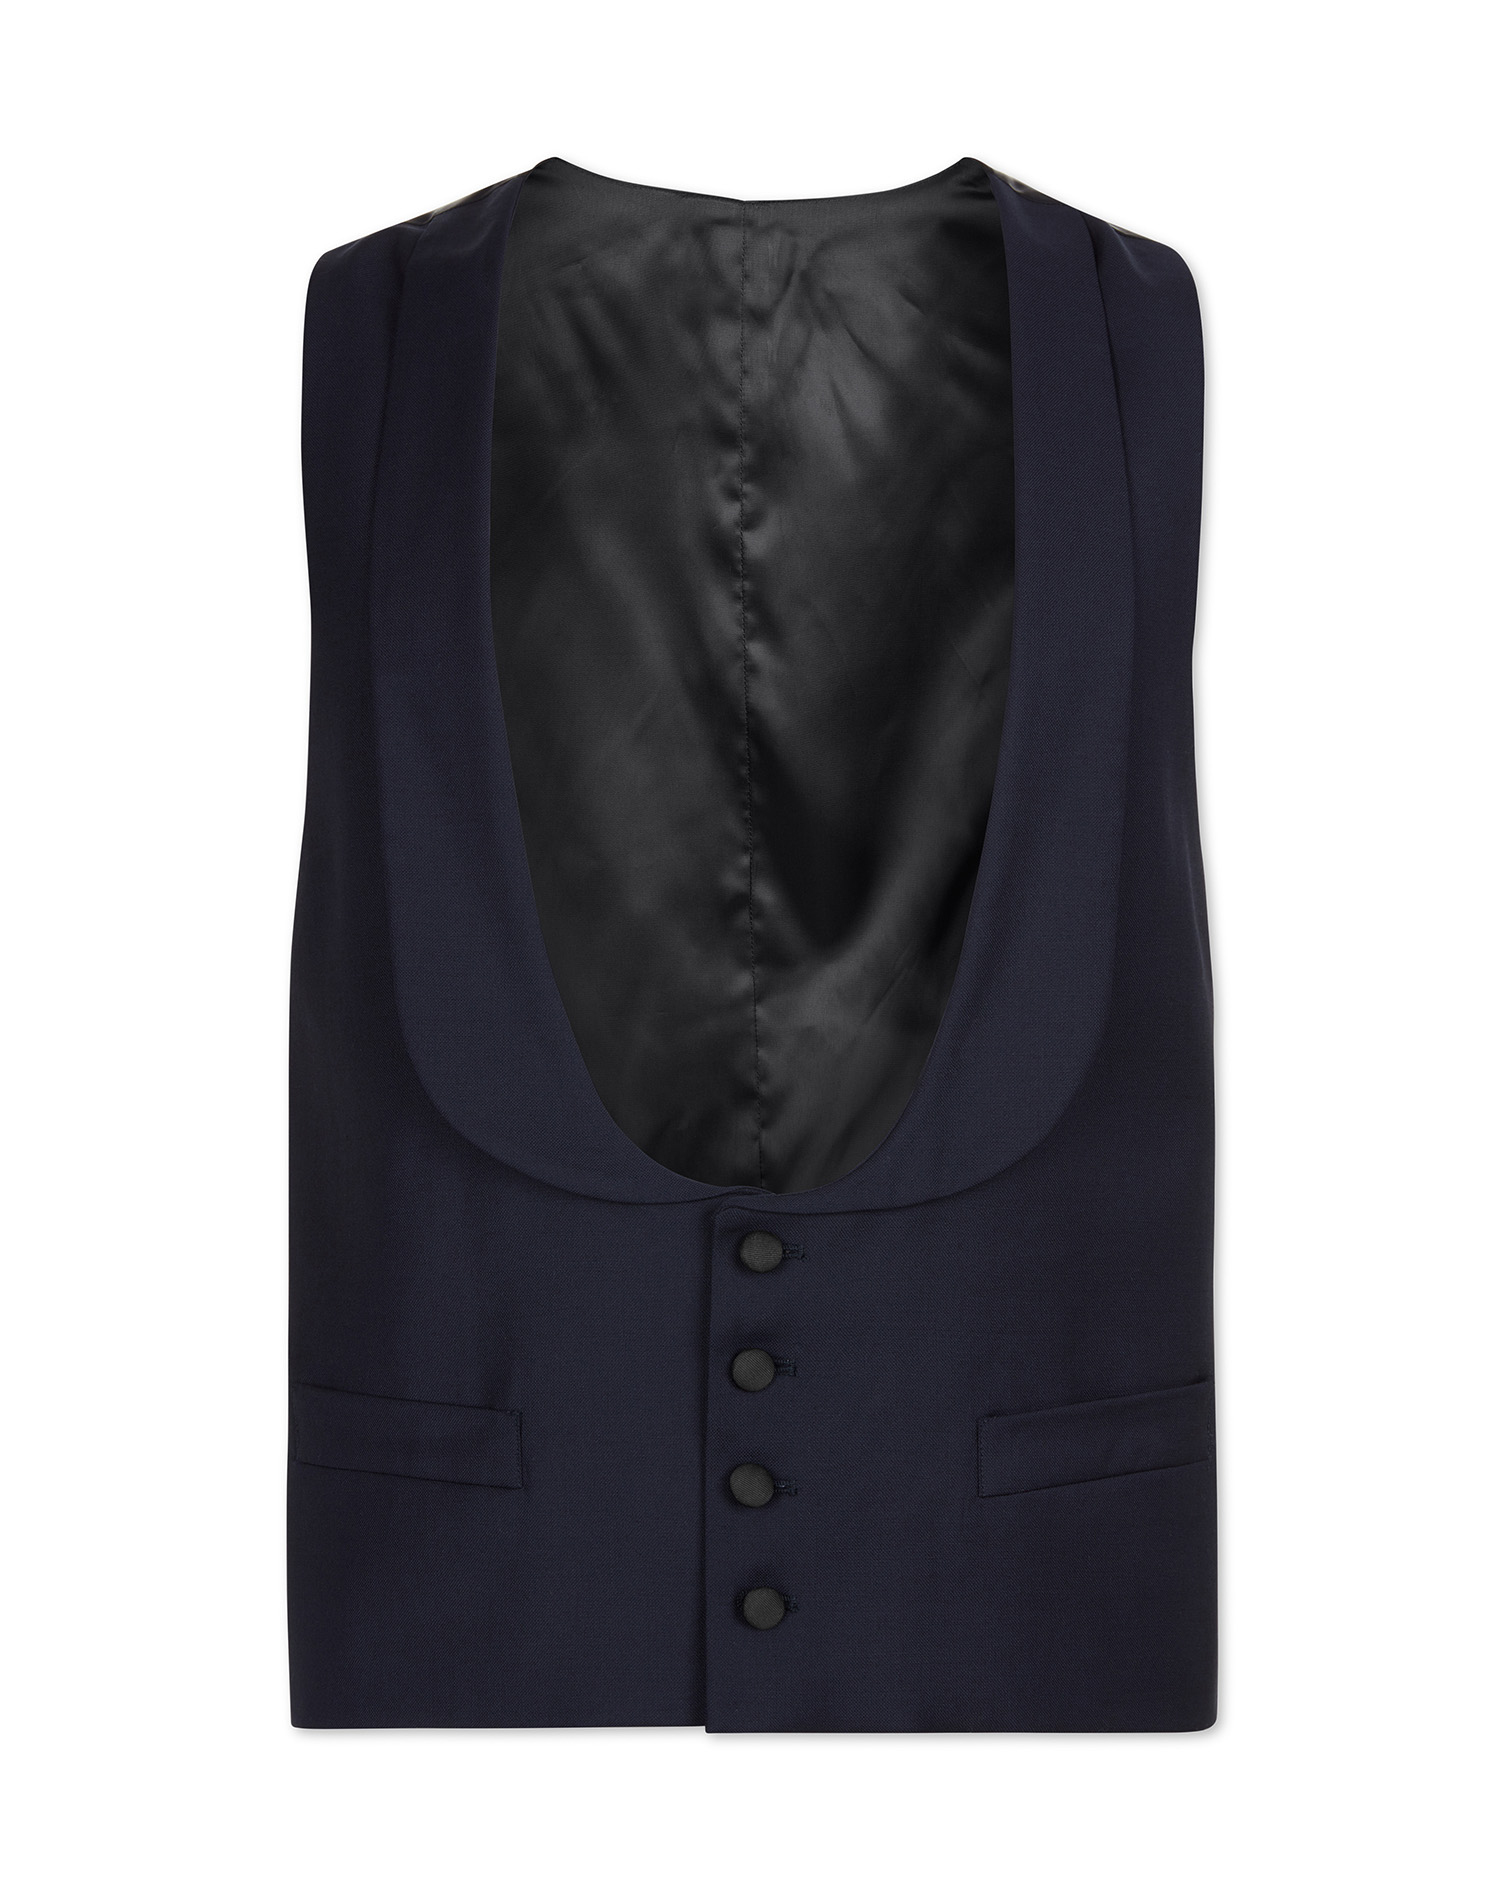 Edwardian Men's Formal Wear Charles Tyrwhitt Navy tuxedo waistcoat £69.95 AT vintagedancer.com